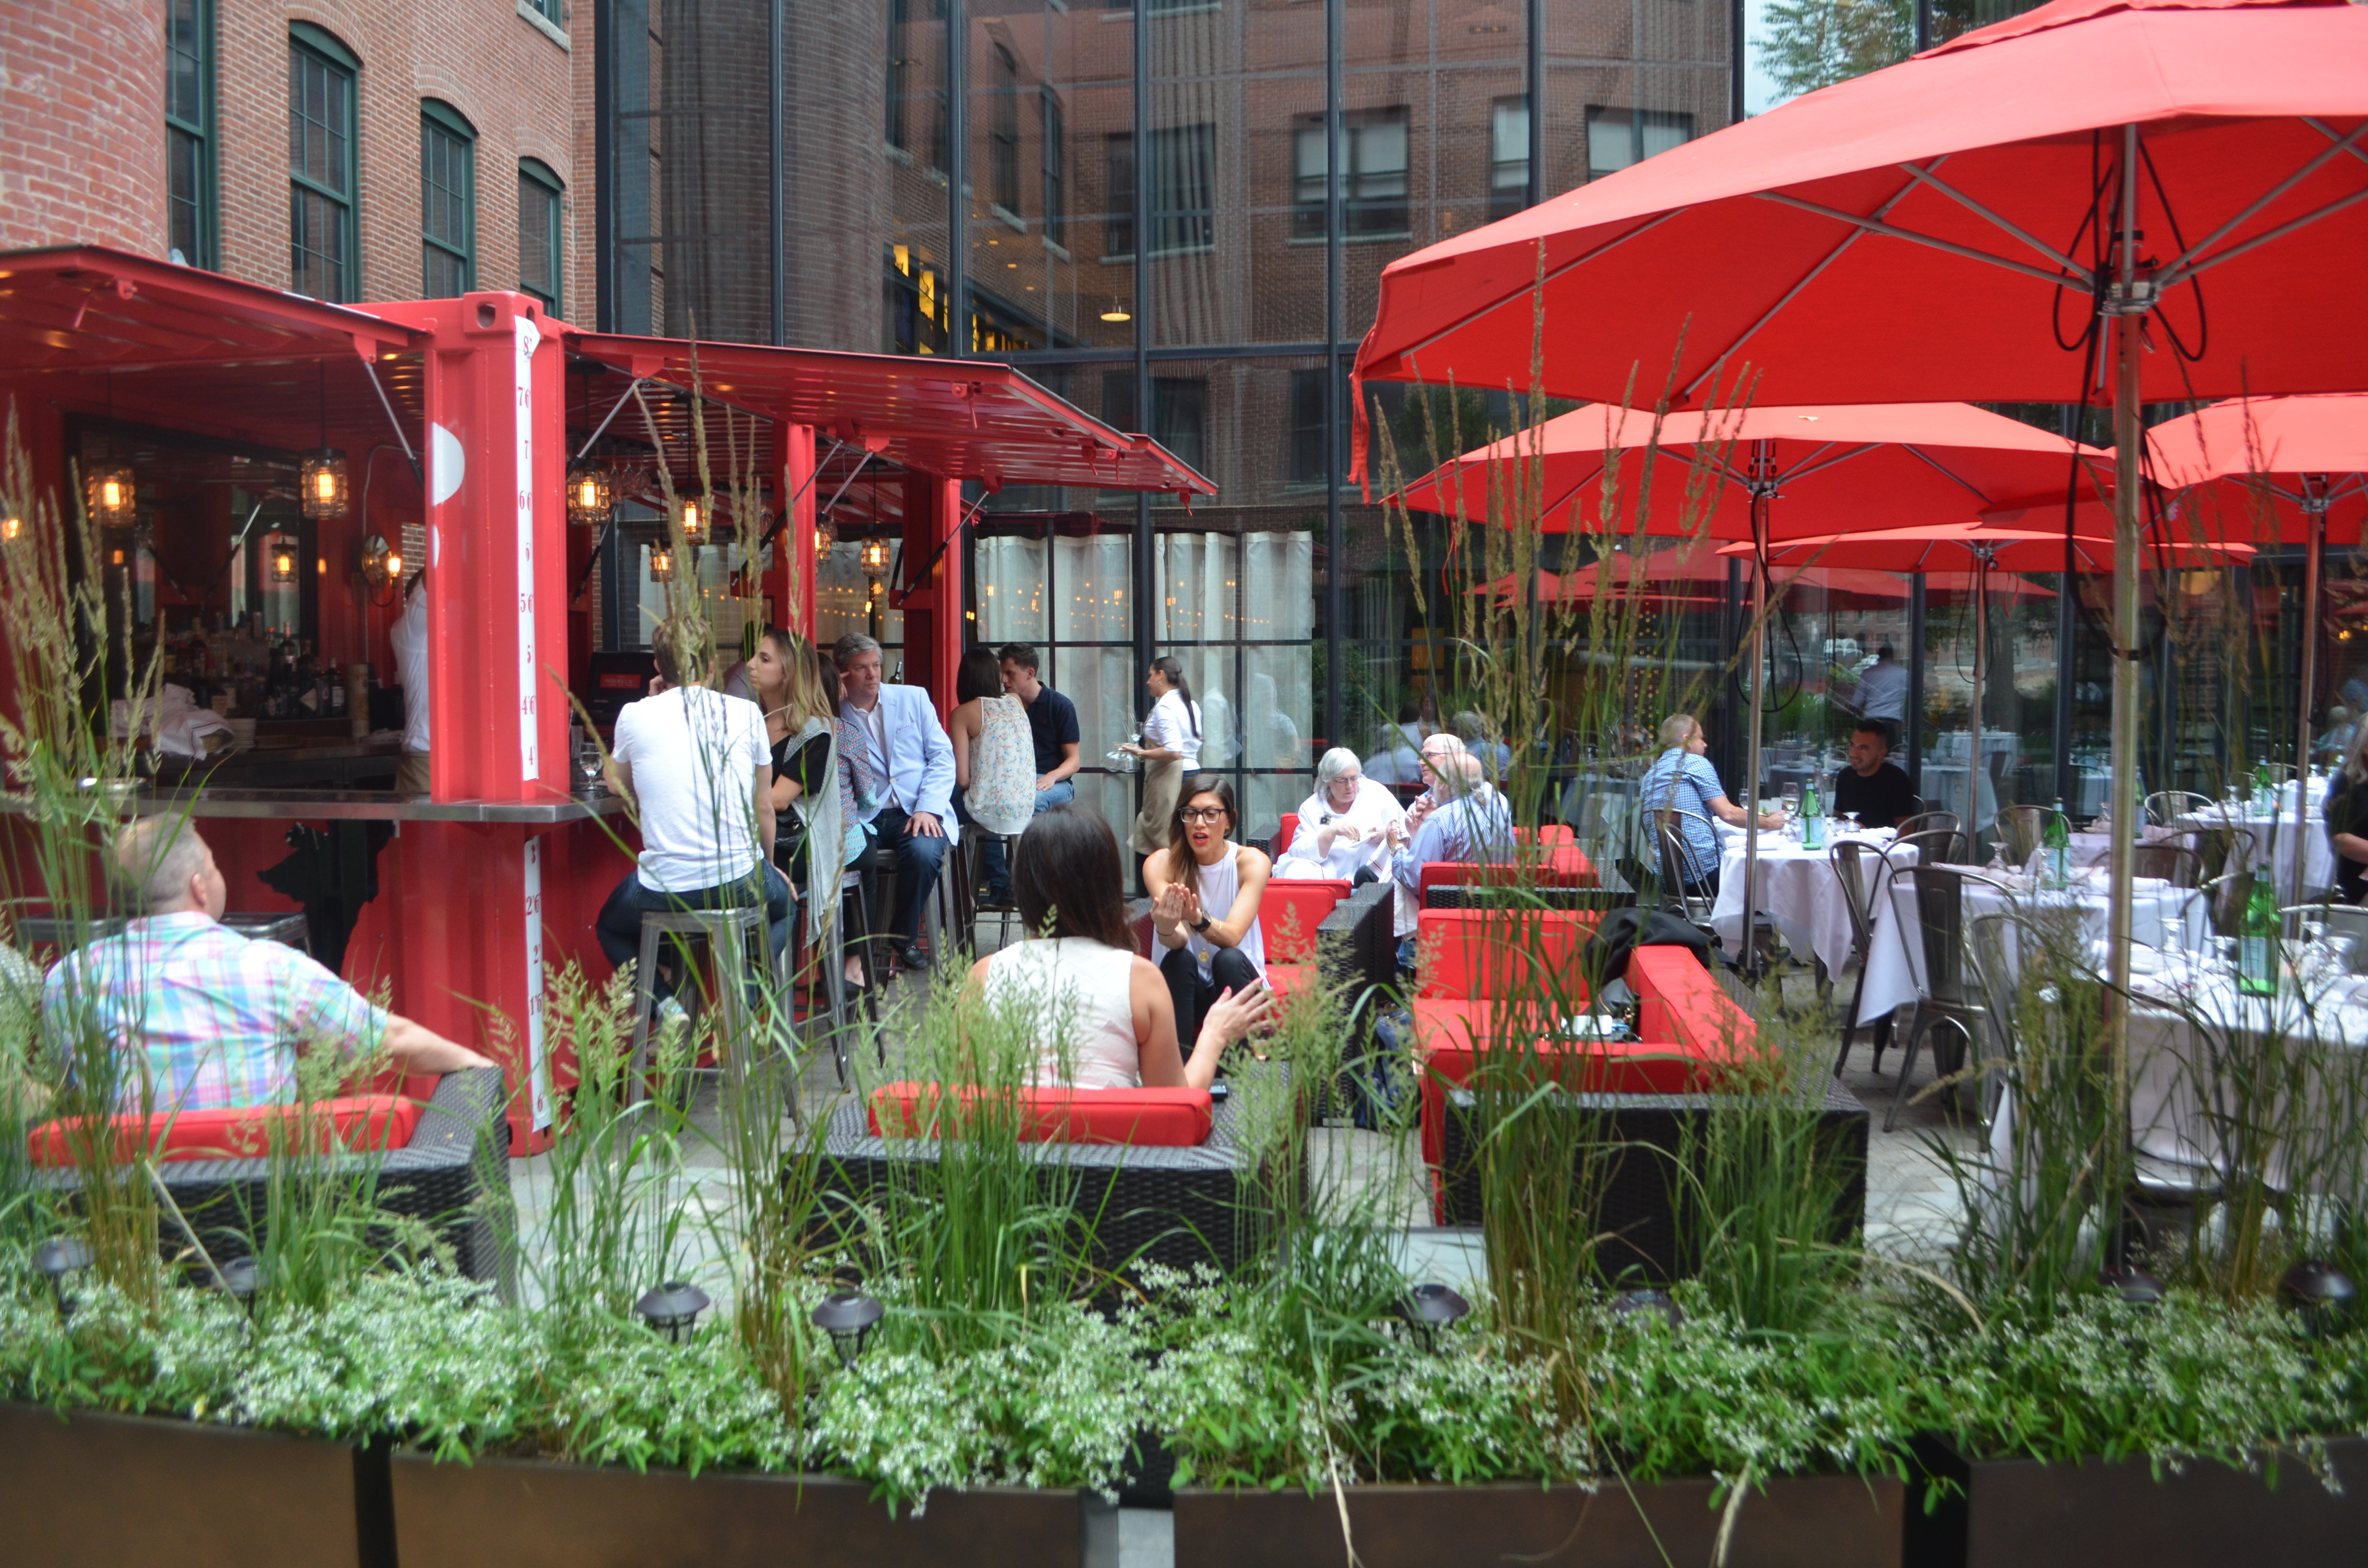 Cinquecento's patio. The Rosso Patio Bar is on the left.